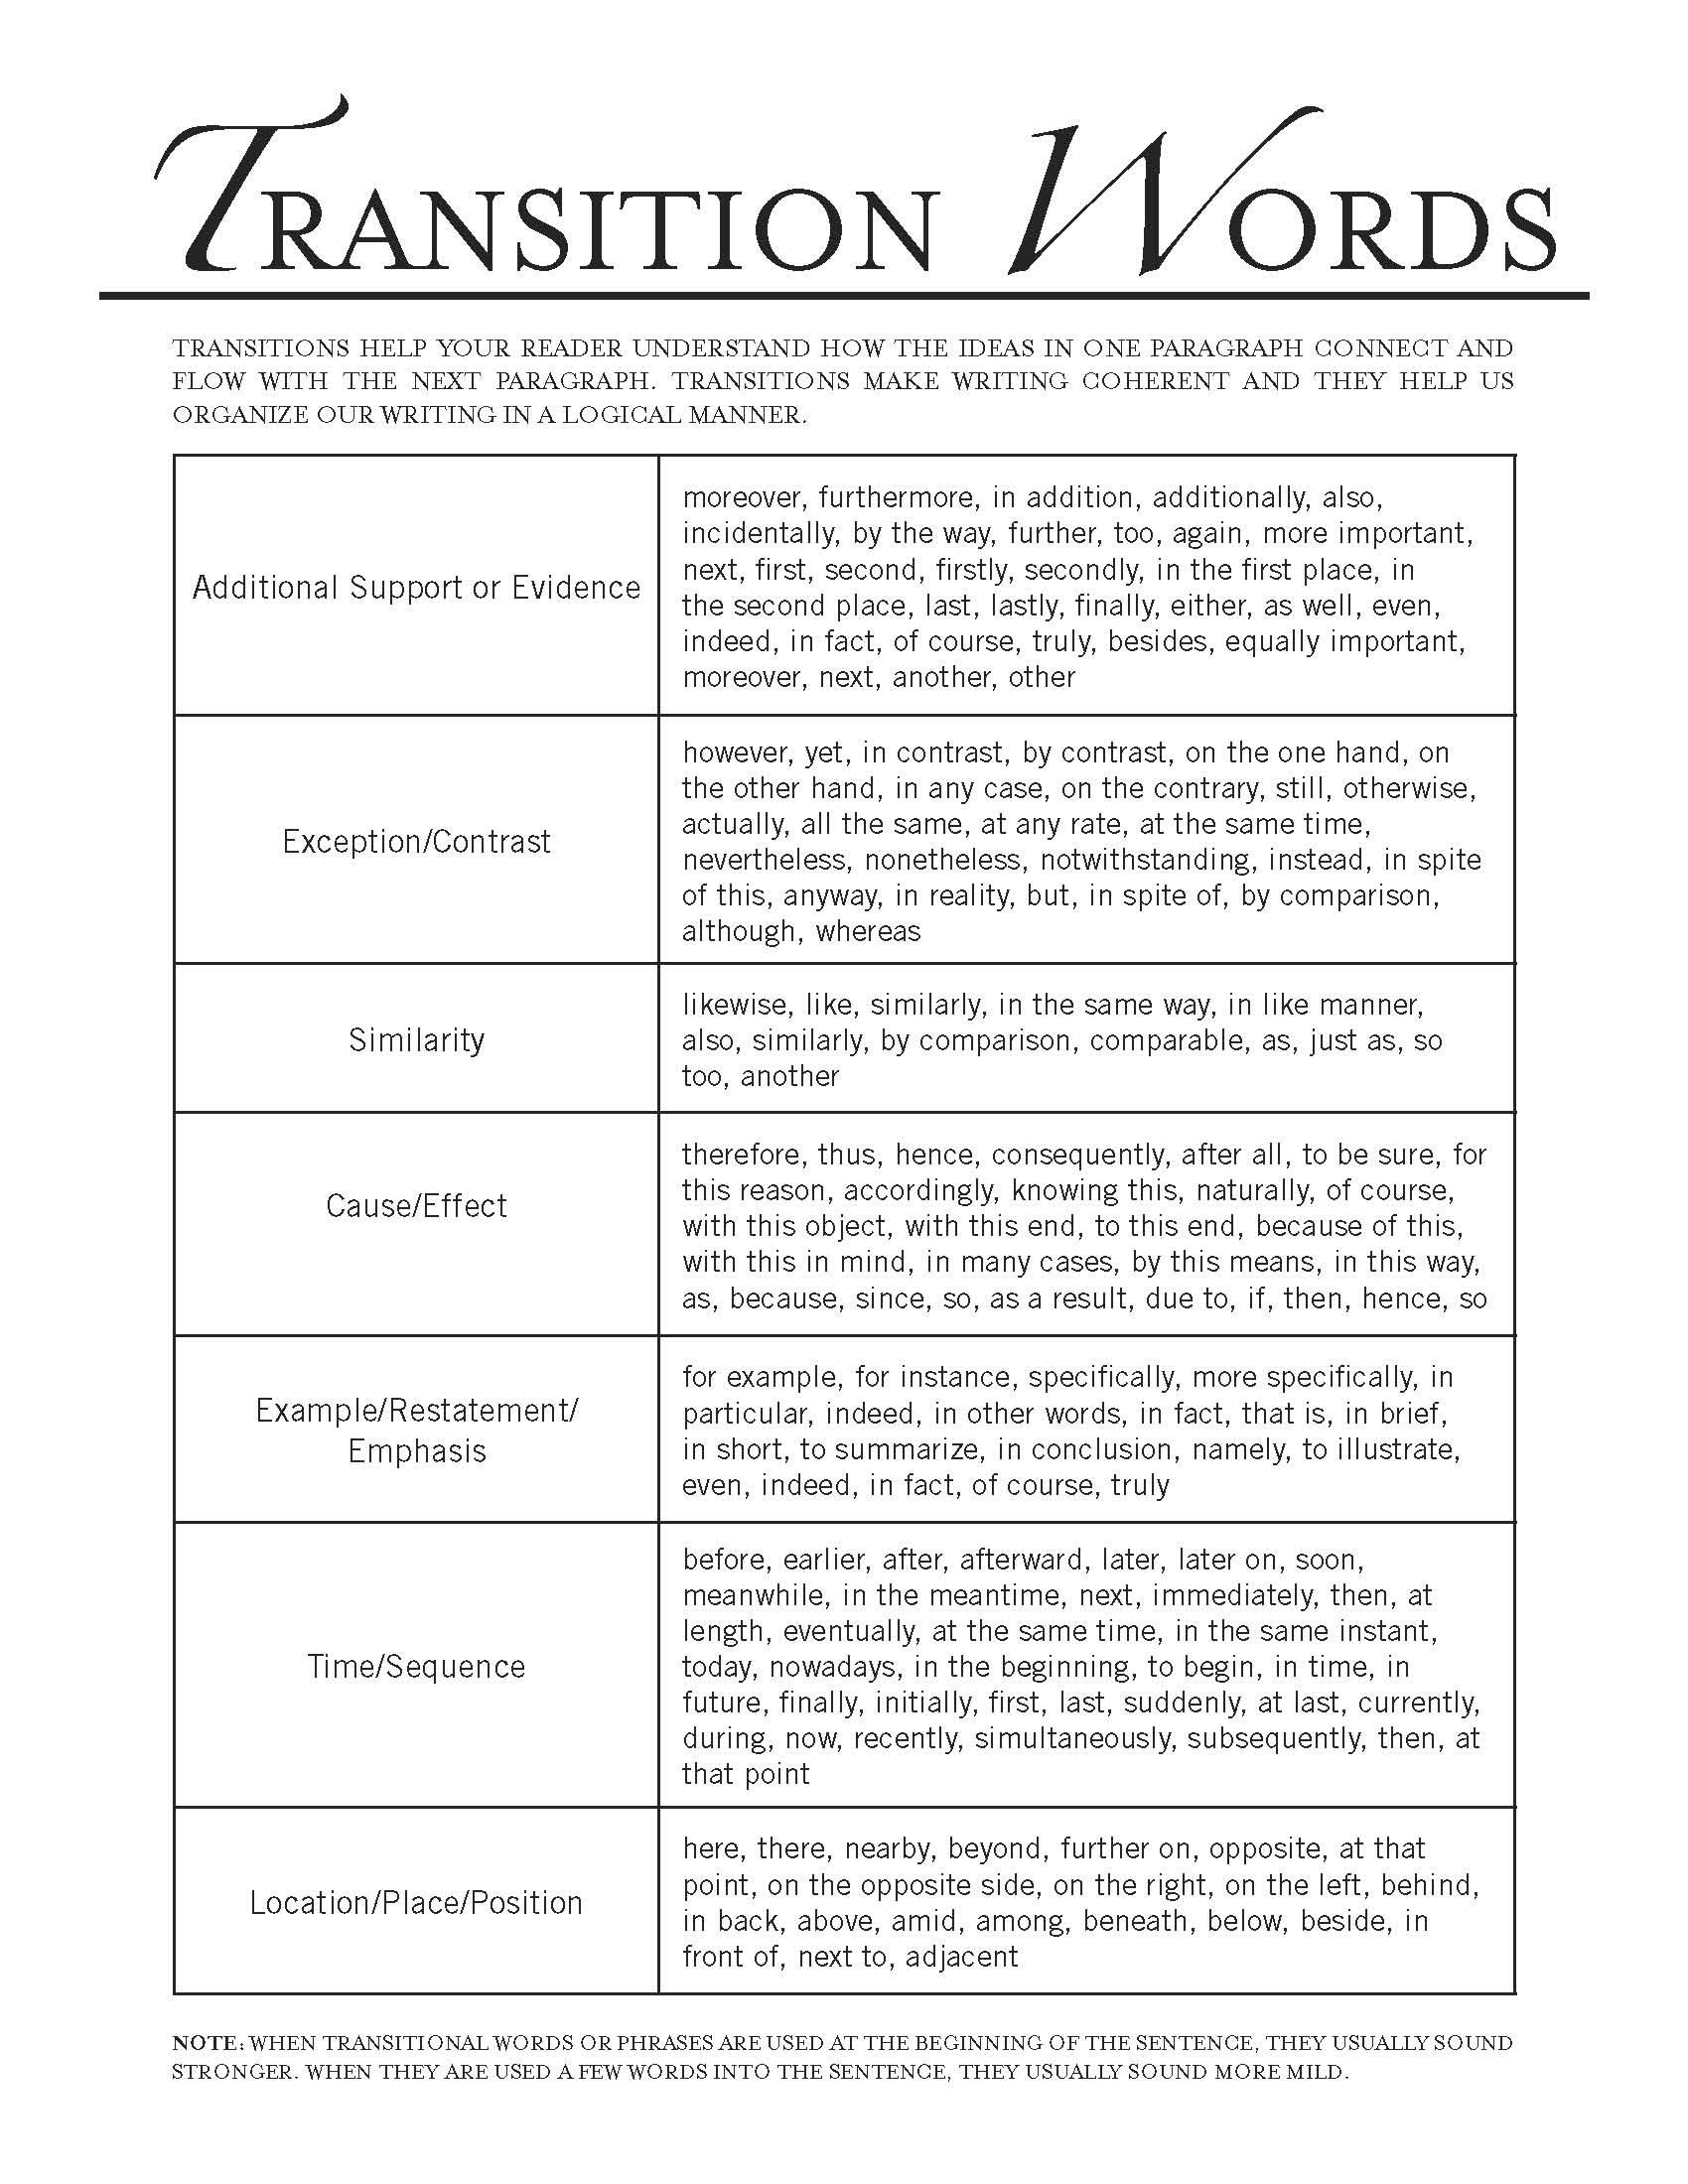 002 Essay Example Good Transition Words For Formidable Essays In College Expository Full